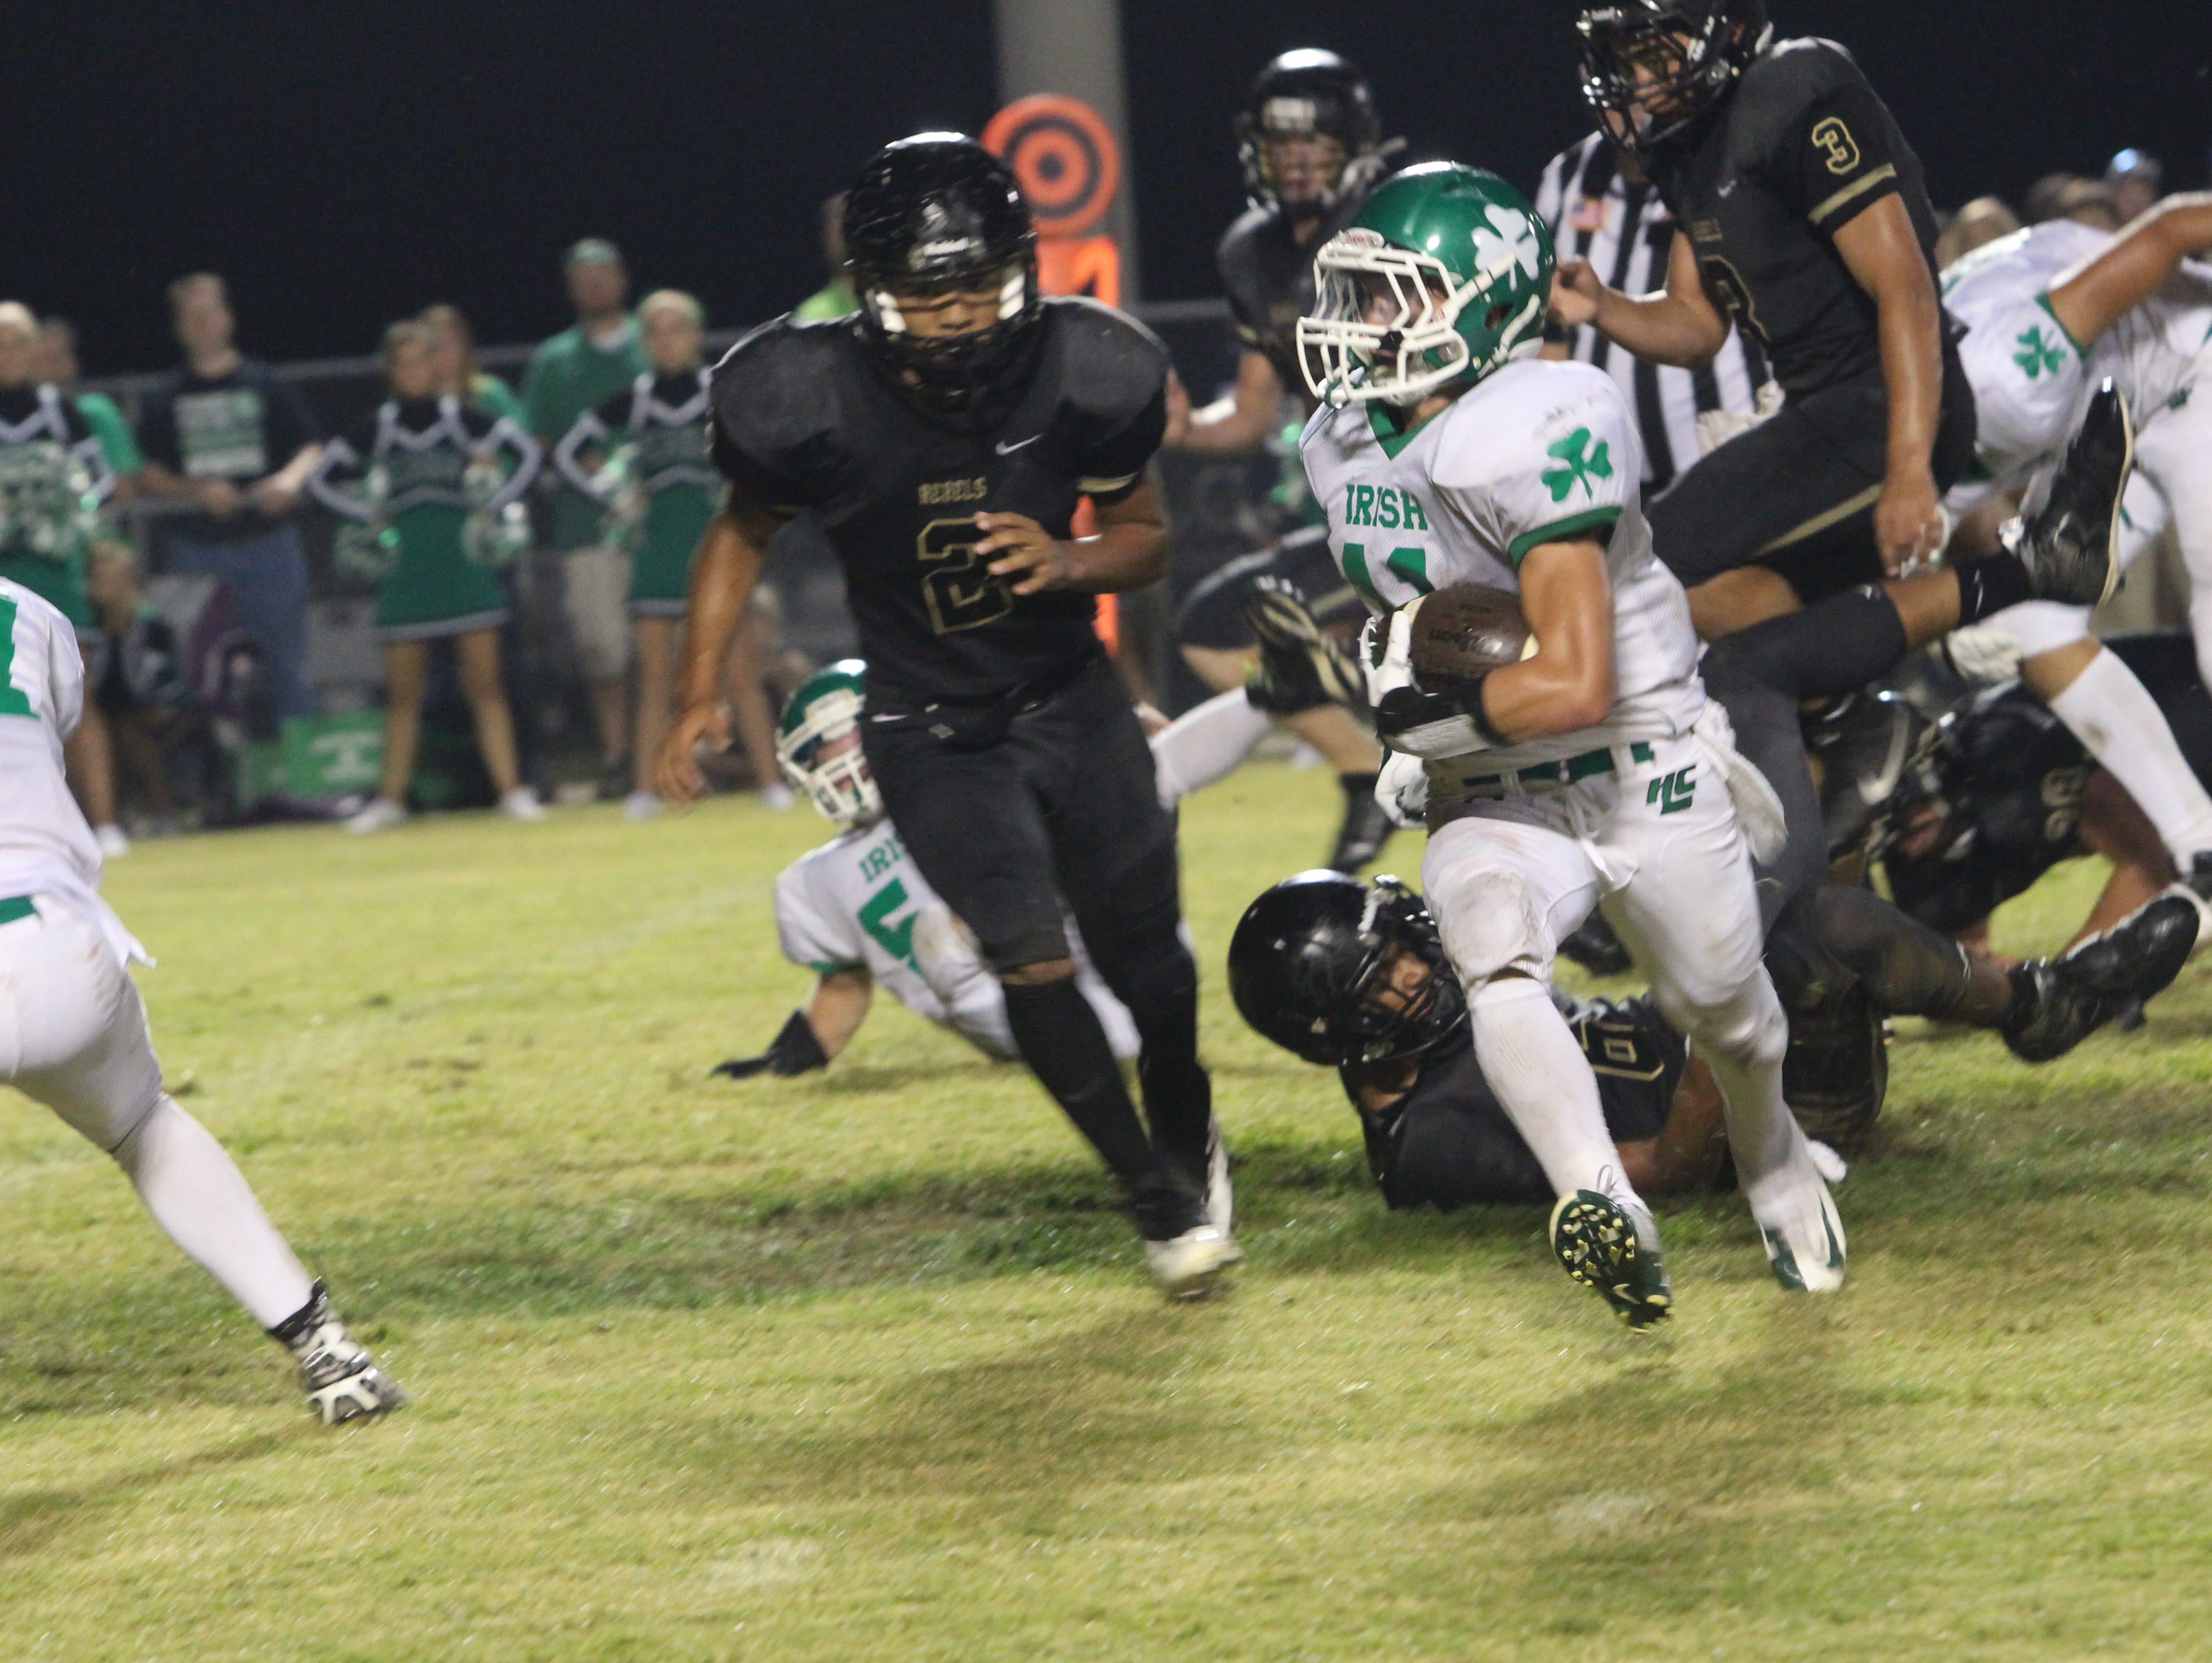 Houston County's Nolas Seay runs around the left end for a touchdown against rival Stewart County earlier this season. The Fighting Irish are ranked No. 10 in the state in Class A and are 5-0.